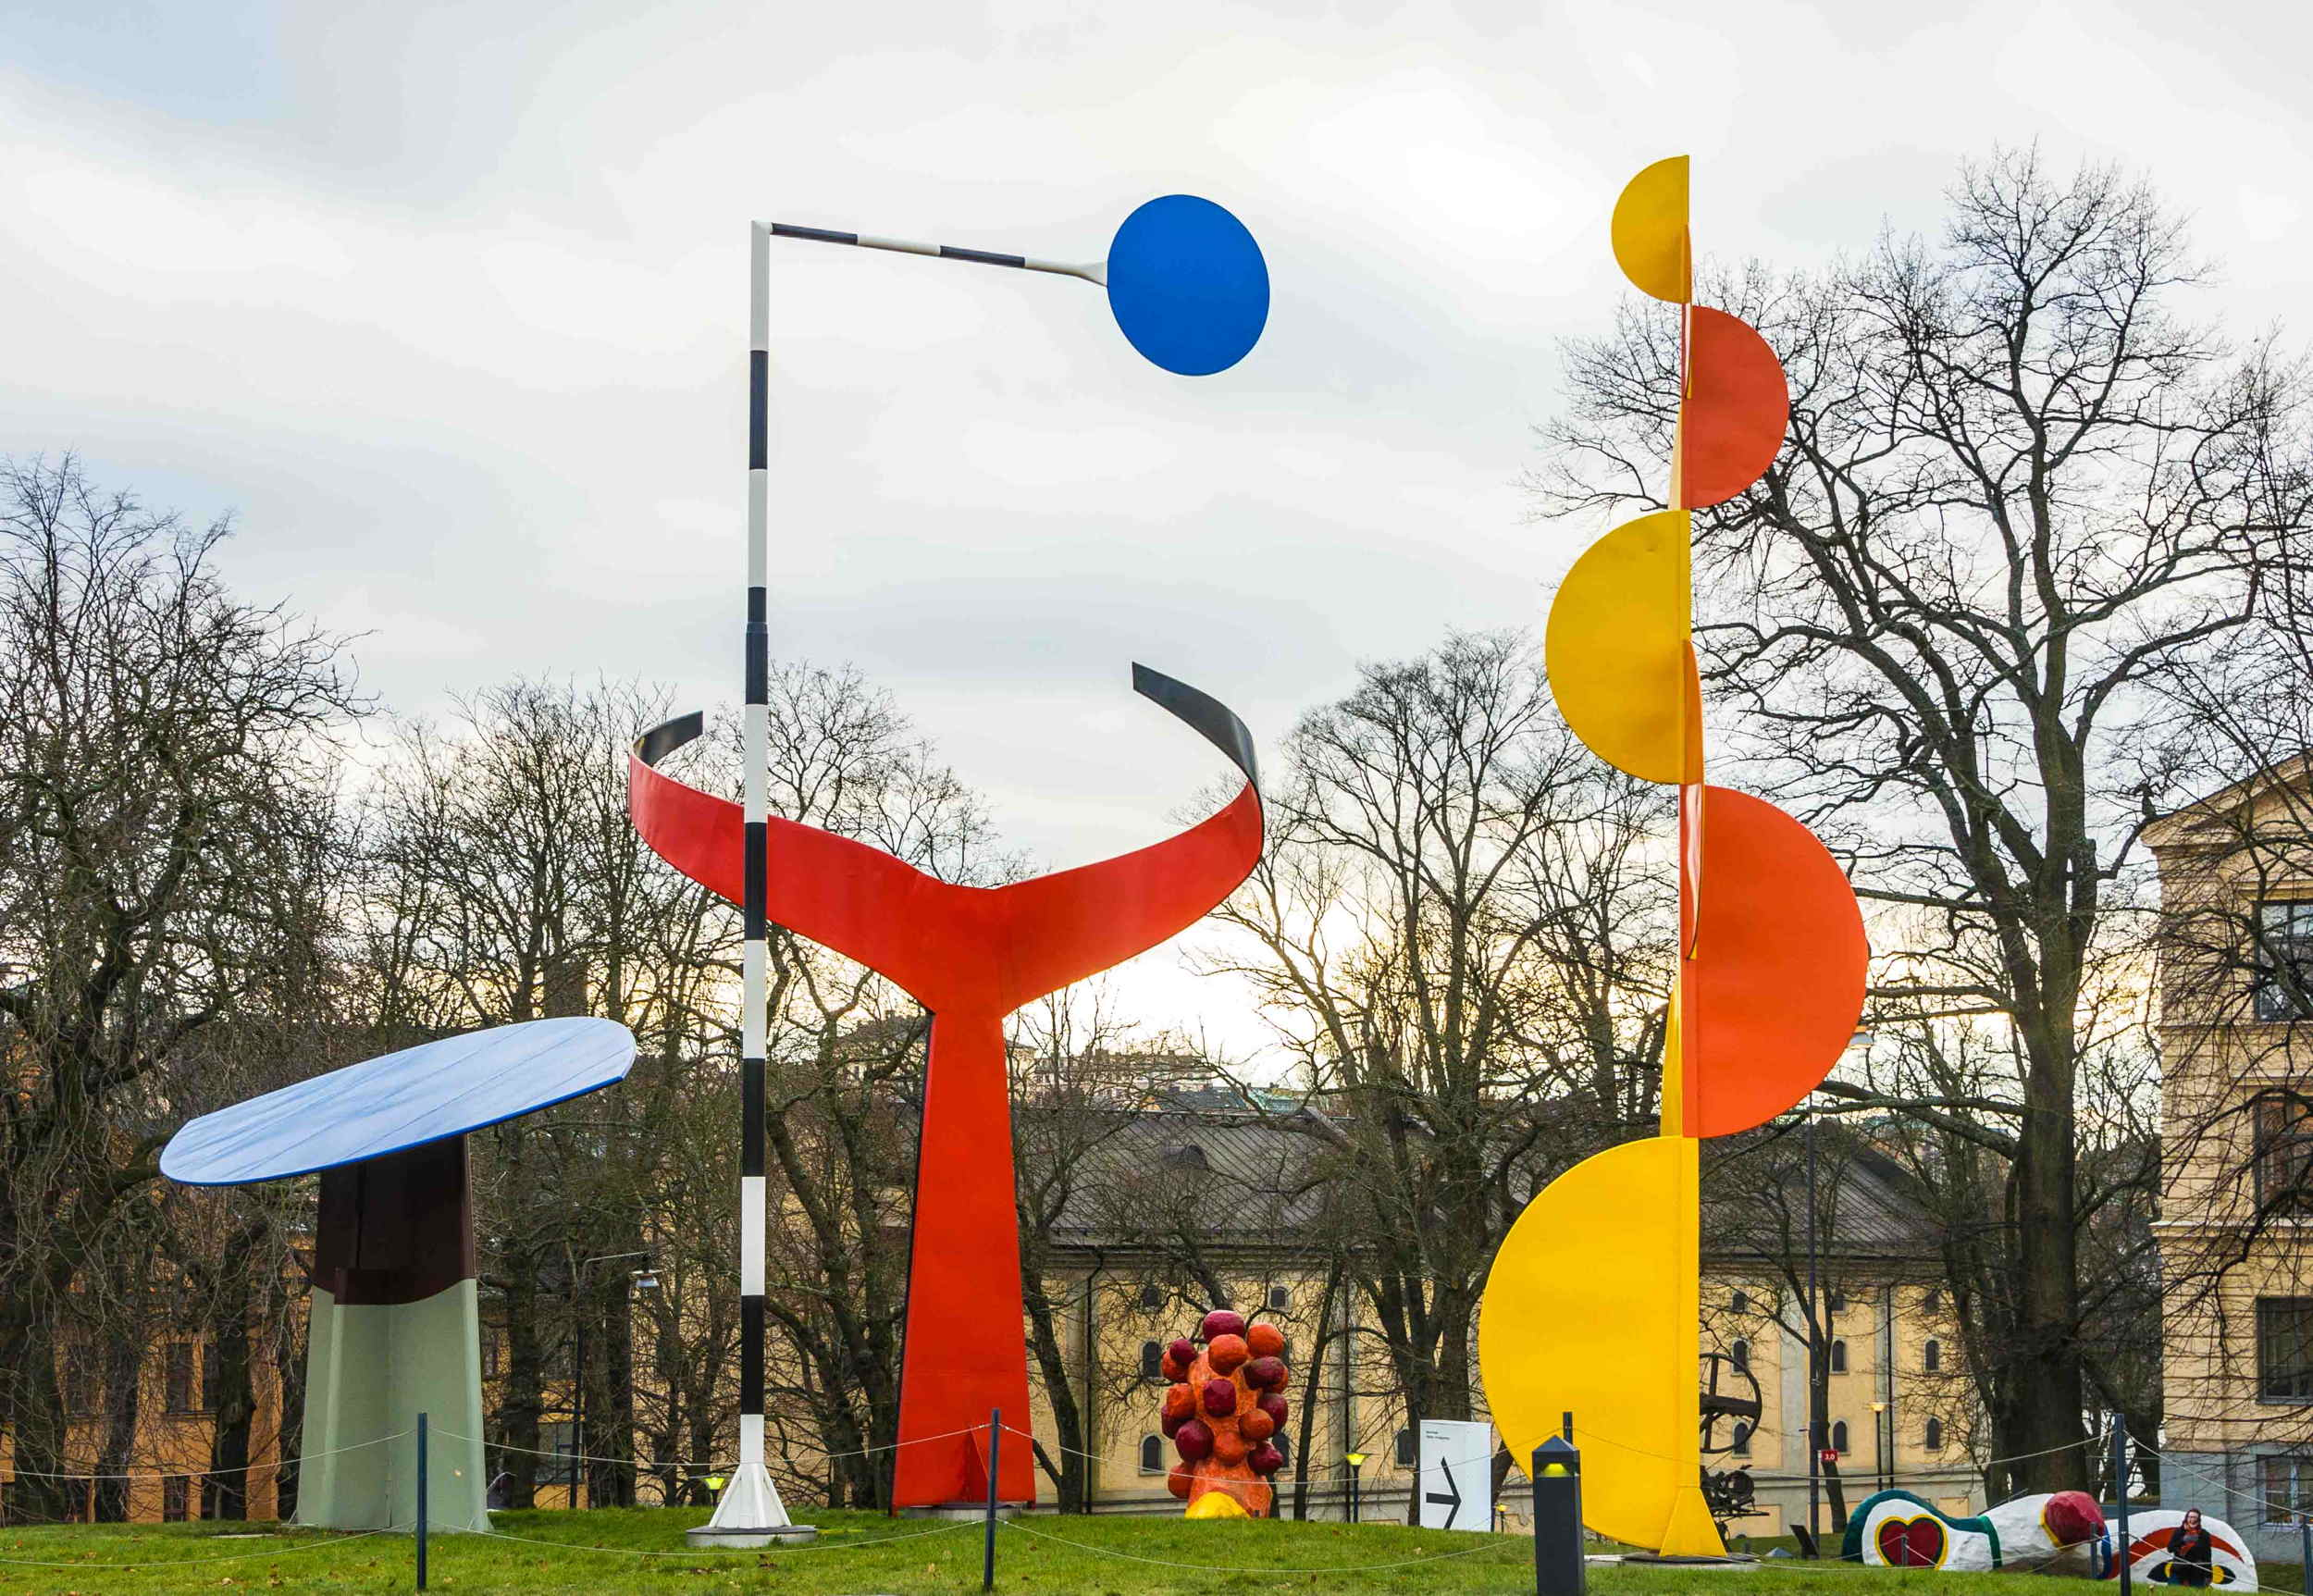 The_Four_Elements_(Alexander_Calder)_at_Moderna_Museet_in_Stockholm.jpg